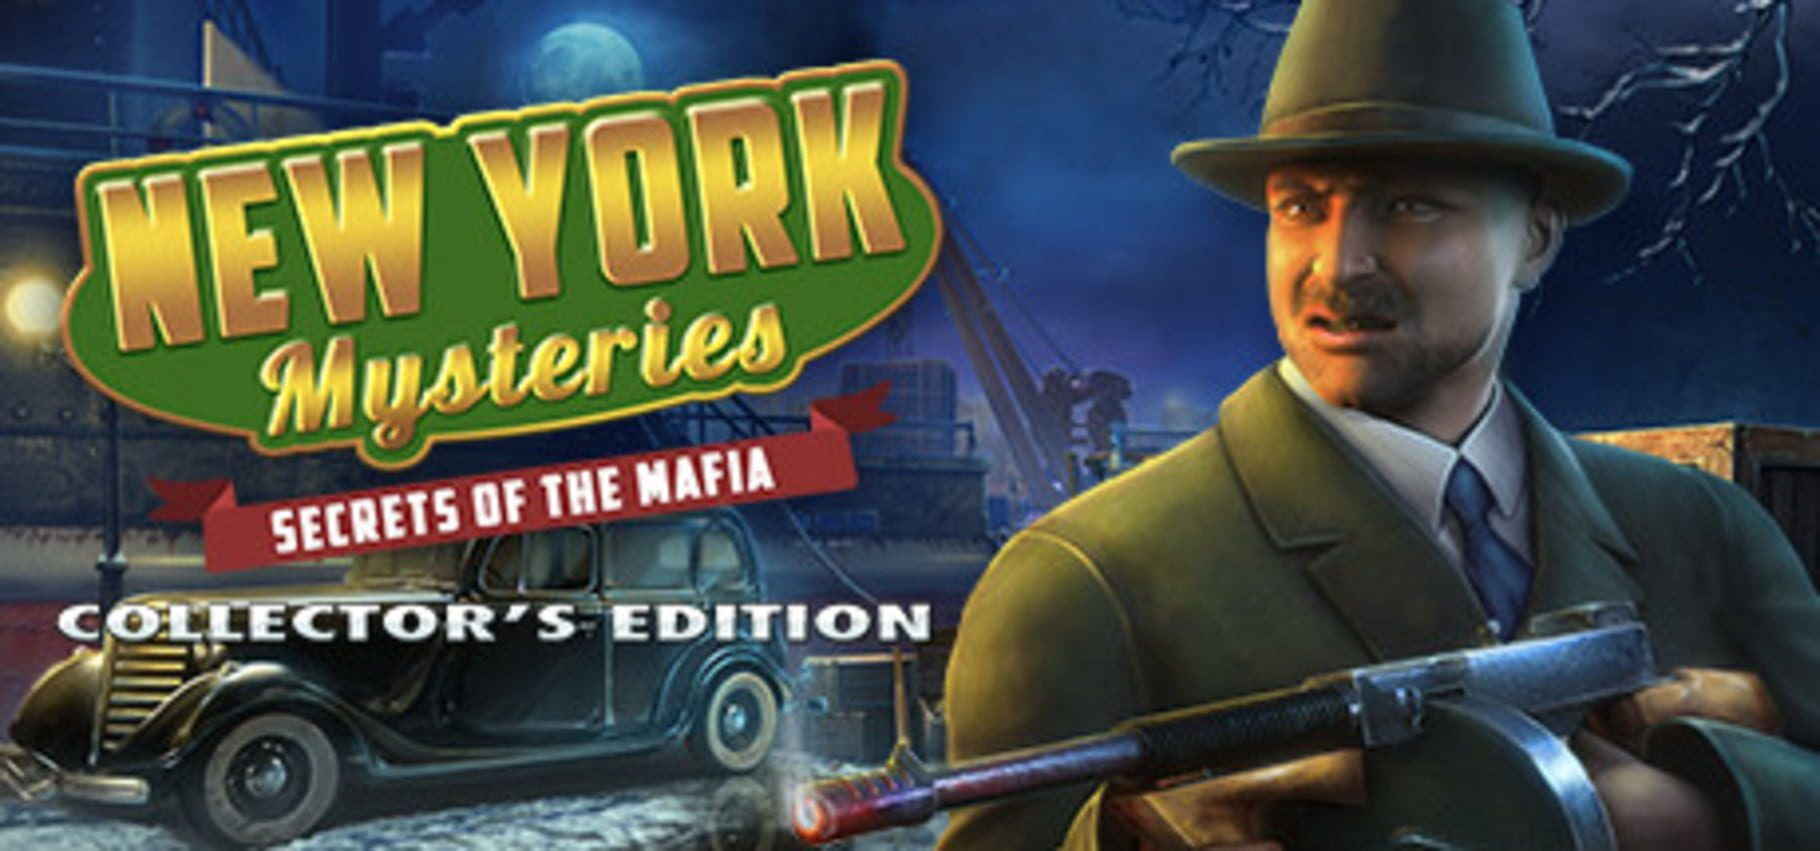 buy New York Mysteries: Secrets of the Mafia cd key for all platform